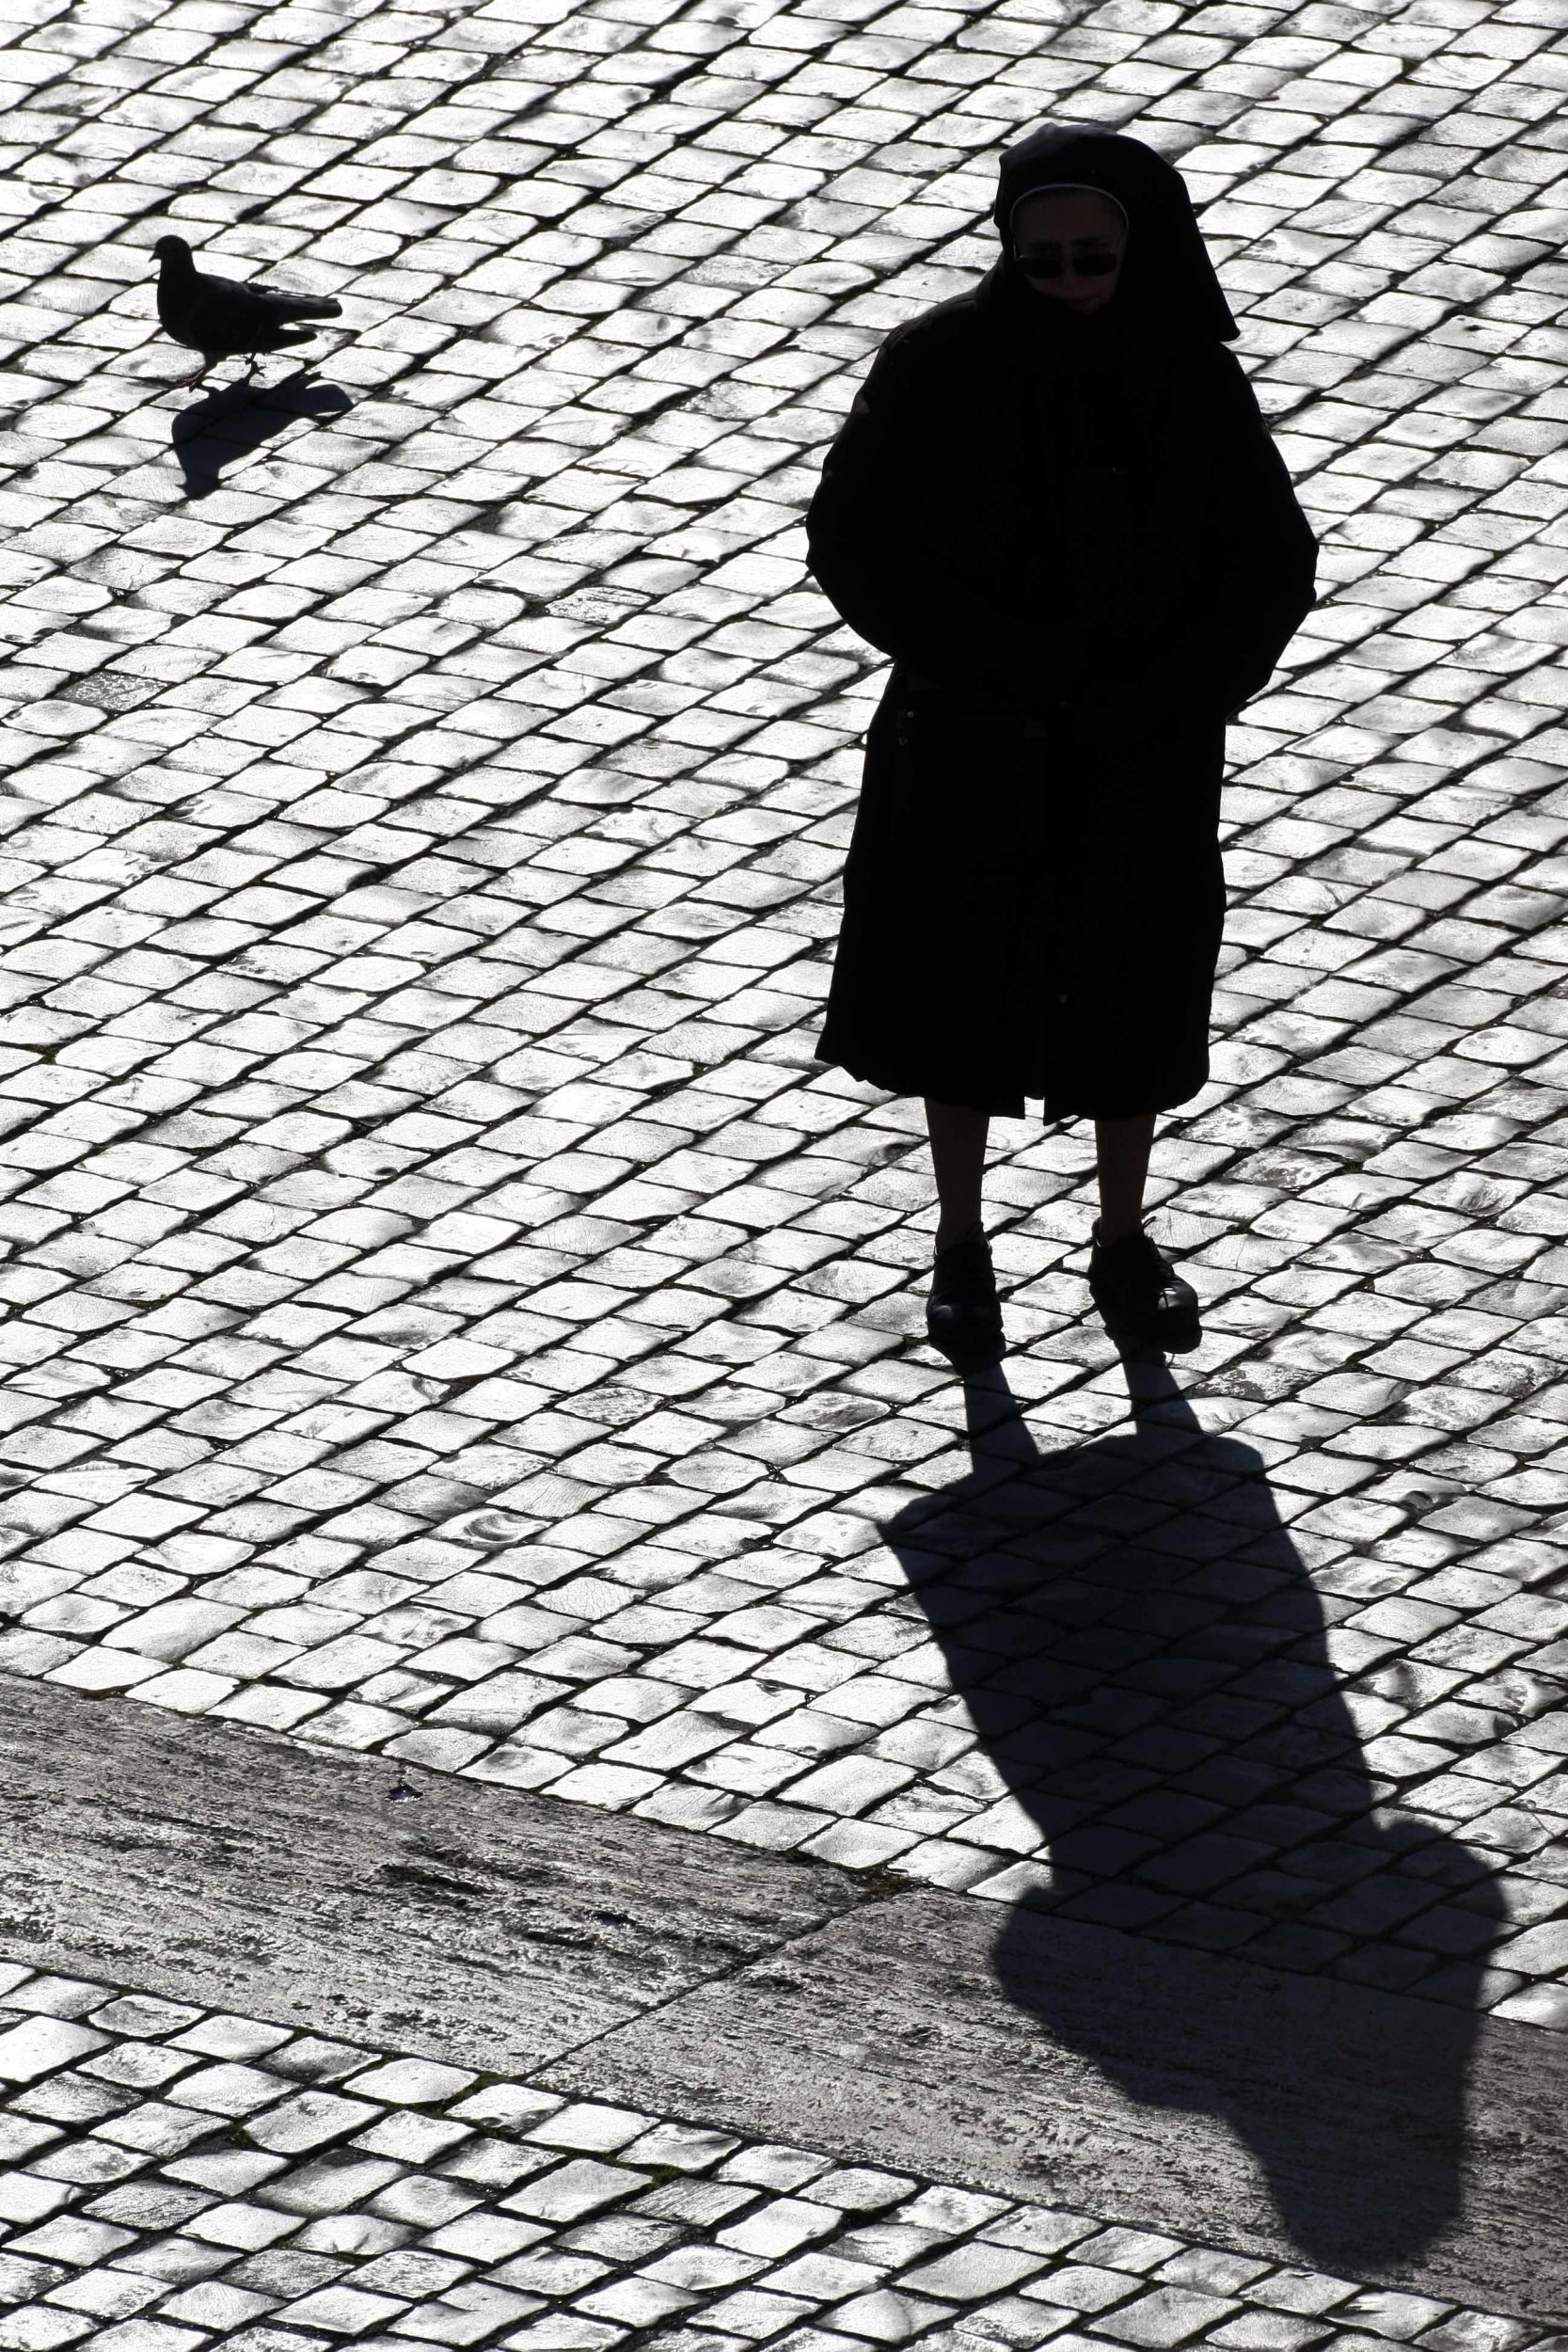 FILE - In this Sunday, Dec. 20, 2009 file photo, a nun is silhouetted in St. Peter's Square at the Vatican. Some nuns are now finding their voices, buoyed by the #MeToo movement and the growing recognition that adults can be victims of sexual abuse when there is an imbalance of power in a relationship. The sisters are going public in part because of years of inaction by church leaders, even after major studies on the problem in Africa were reported to the Vatican in the 1990s. (AP Photo/Pier Paolo Cito, File)